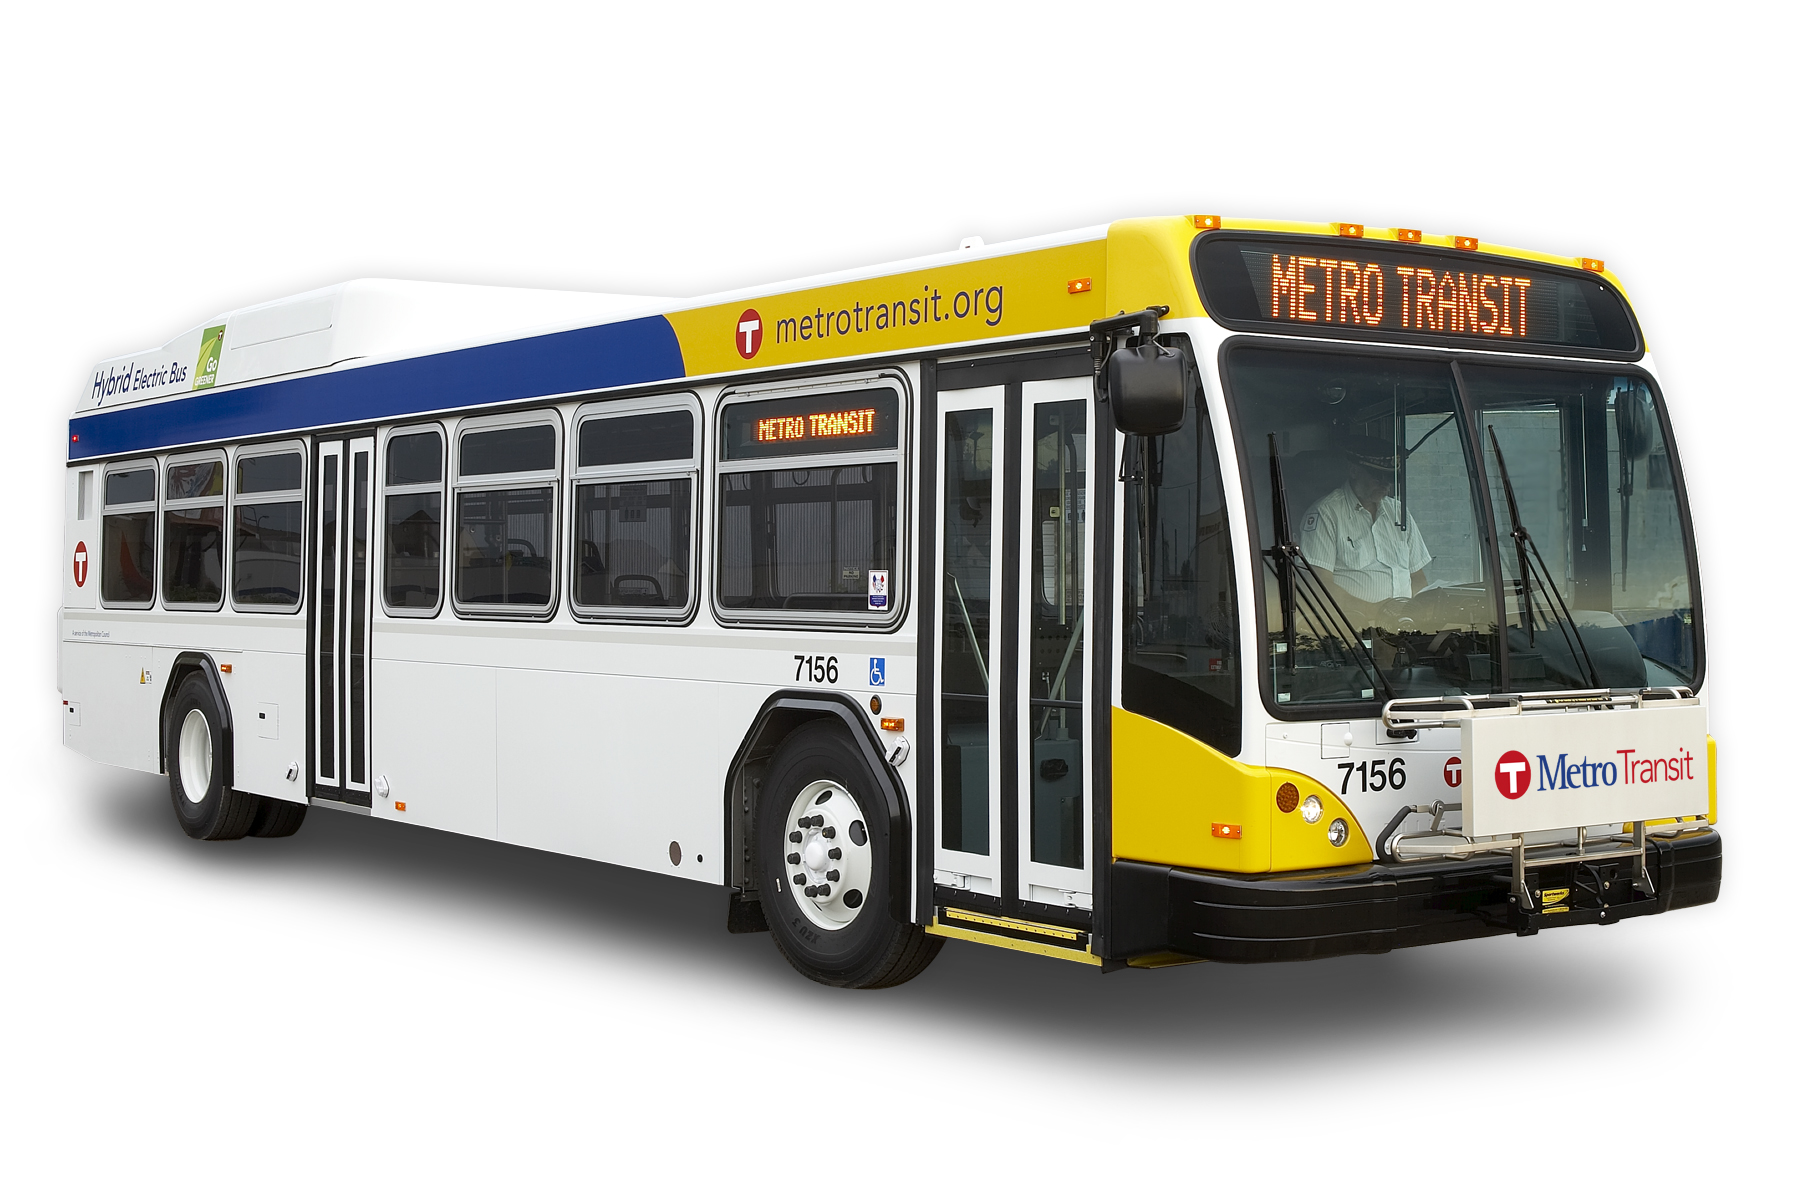 Metro Transit Introduces Hybrid Electric Buses To East